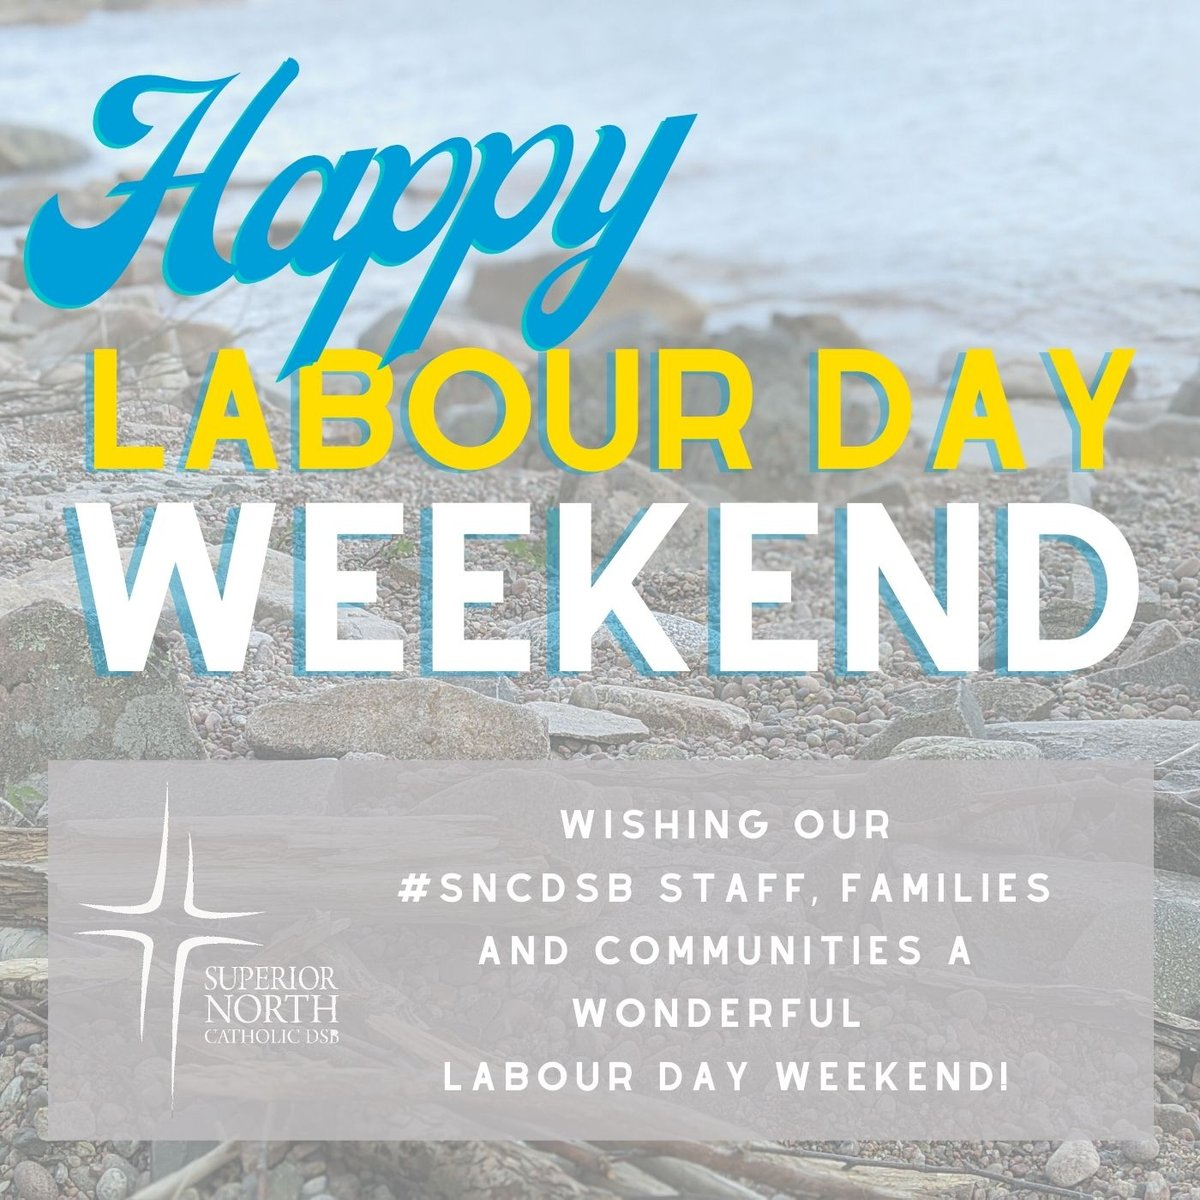 Wishing our #SNCDSB staff, families and communities a wonderful Labour Day Weekend! https://t.co/gCdcjXSY0a